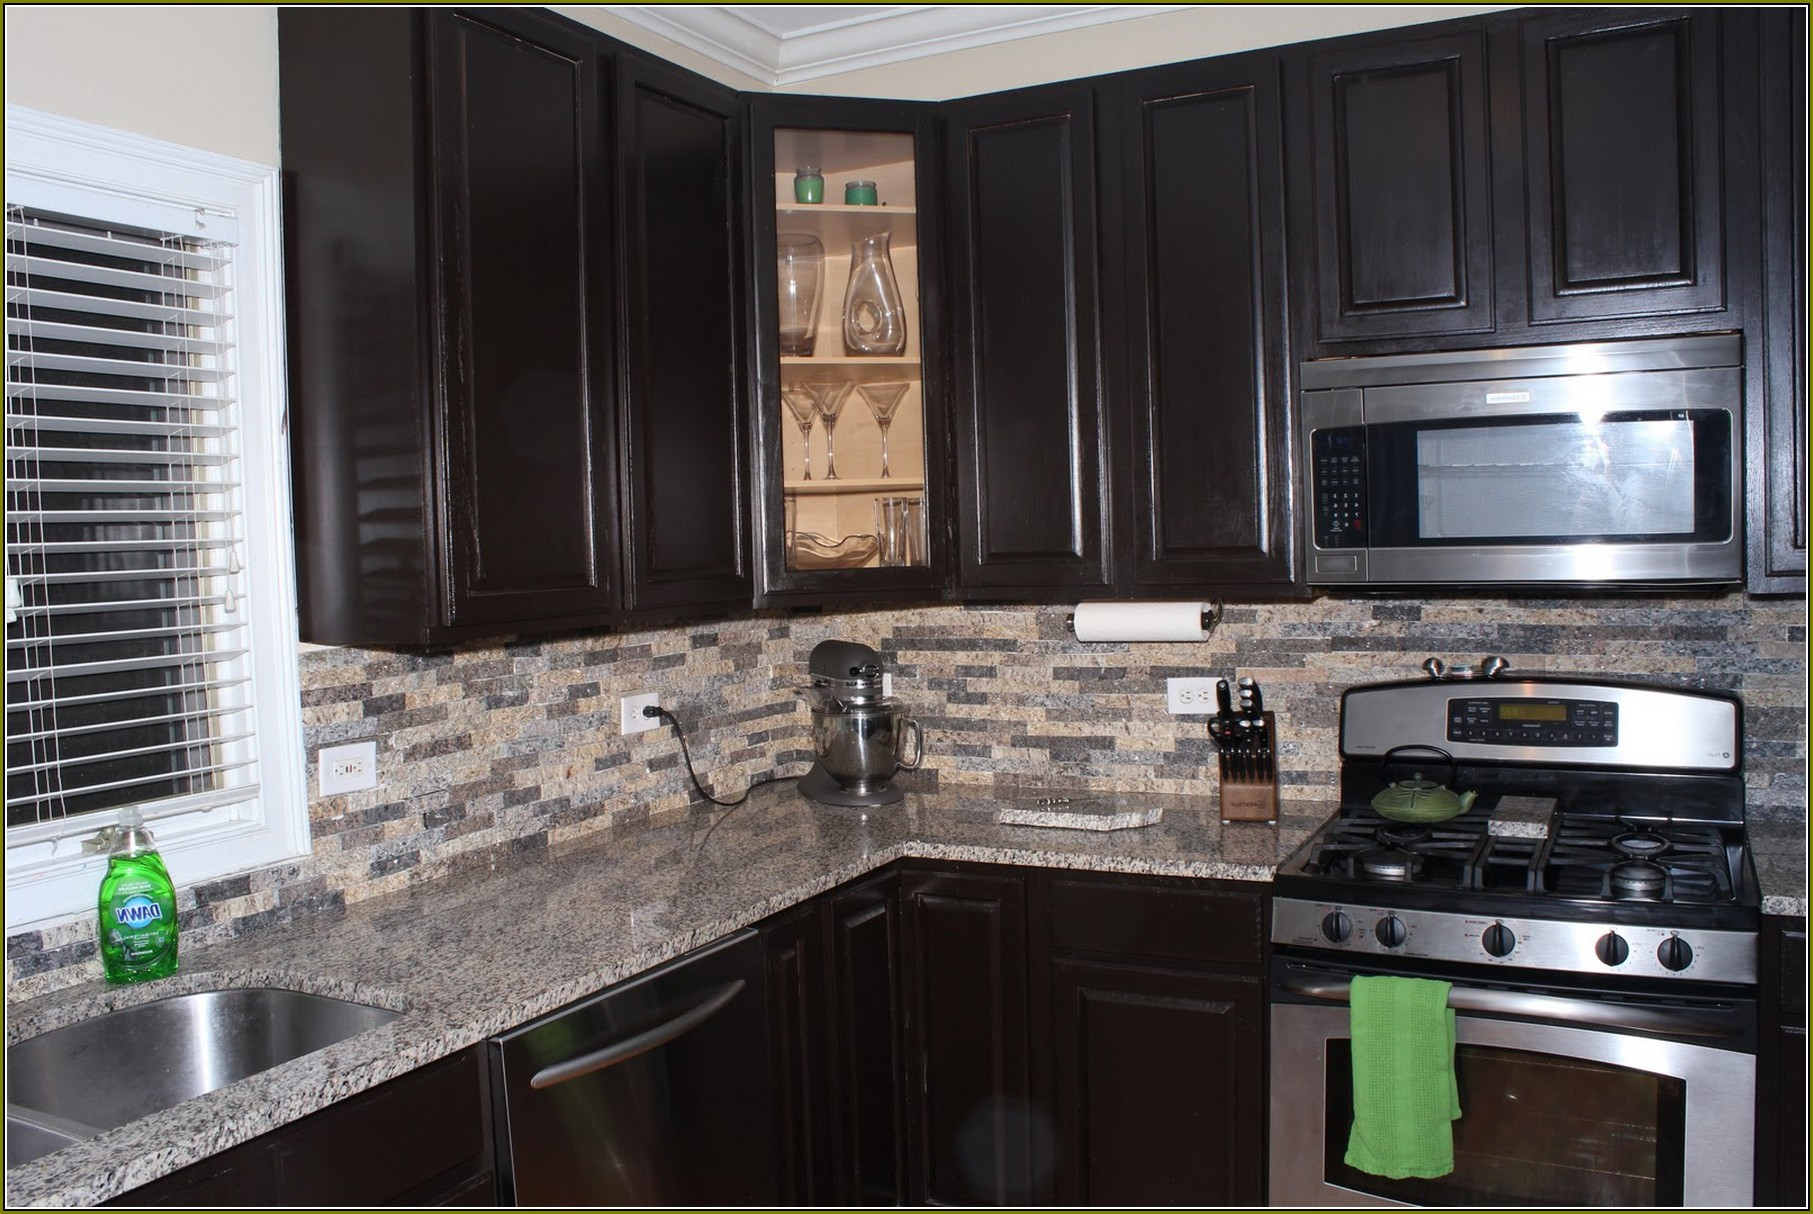 Best ideas about Refinishing Cabinets DIY . Save or Pin Kitchen Cabinet Refinishing Diy – Wow Blog Now.